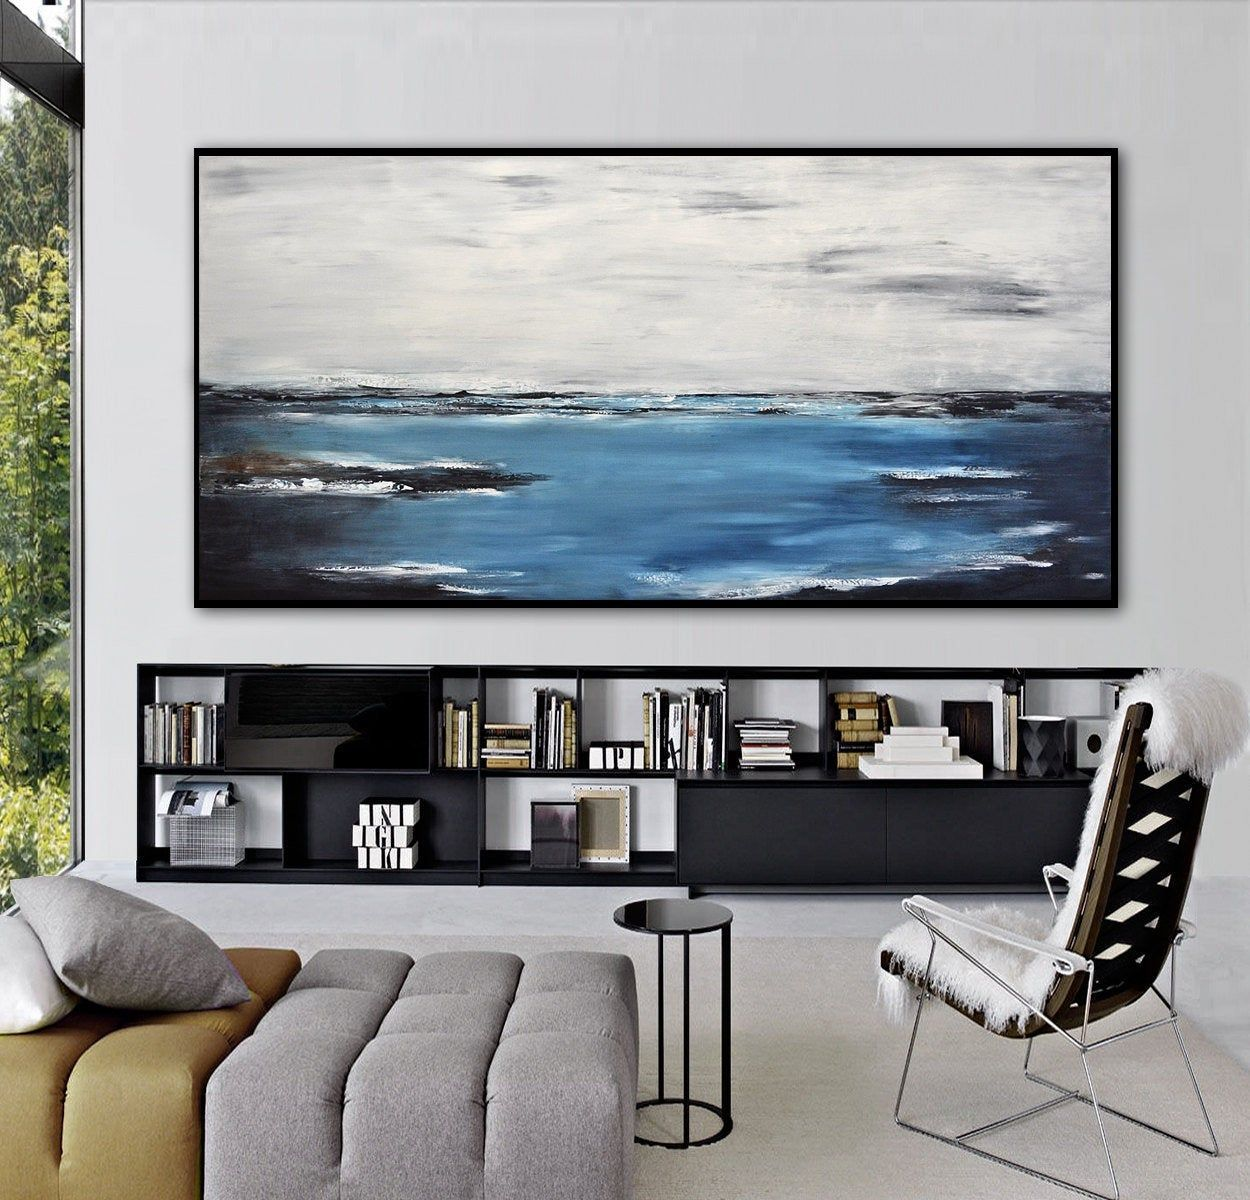 Abstract 36x72 Wall Art Original Seascape Oil Painting Extra Etsy Ocean Landscape Painting Landscape Paintings Abstract Ocean Painting